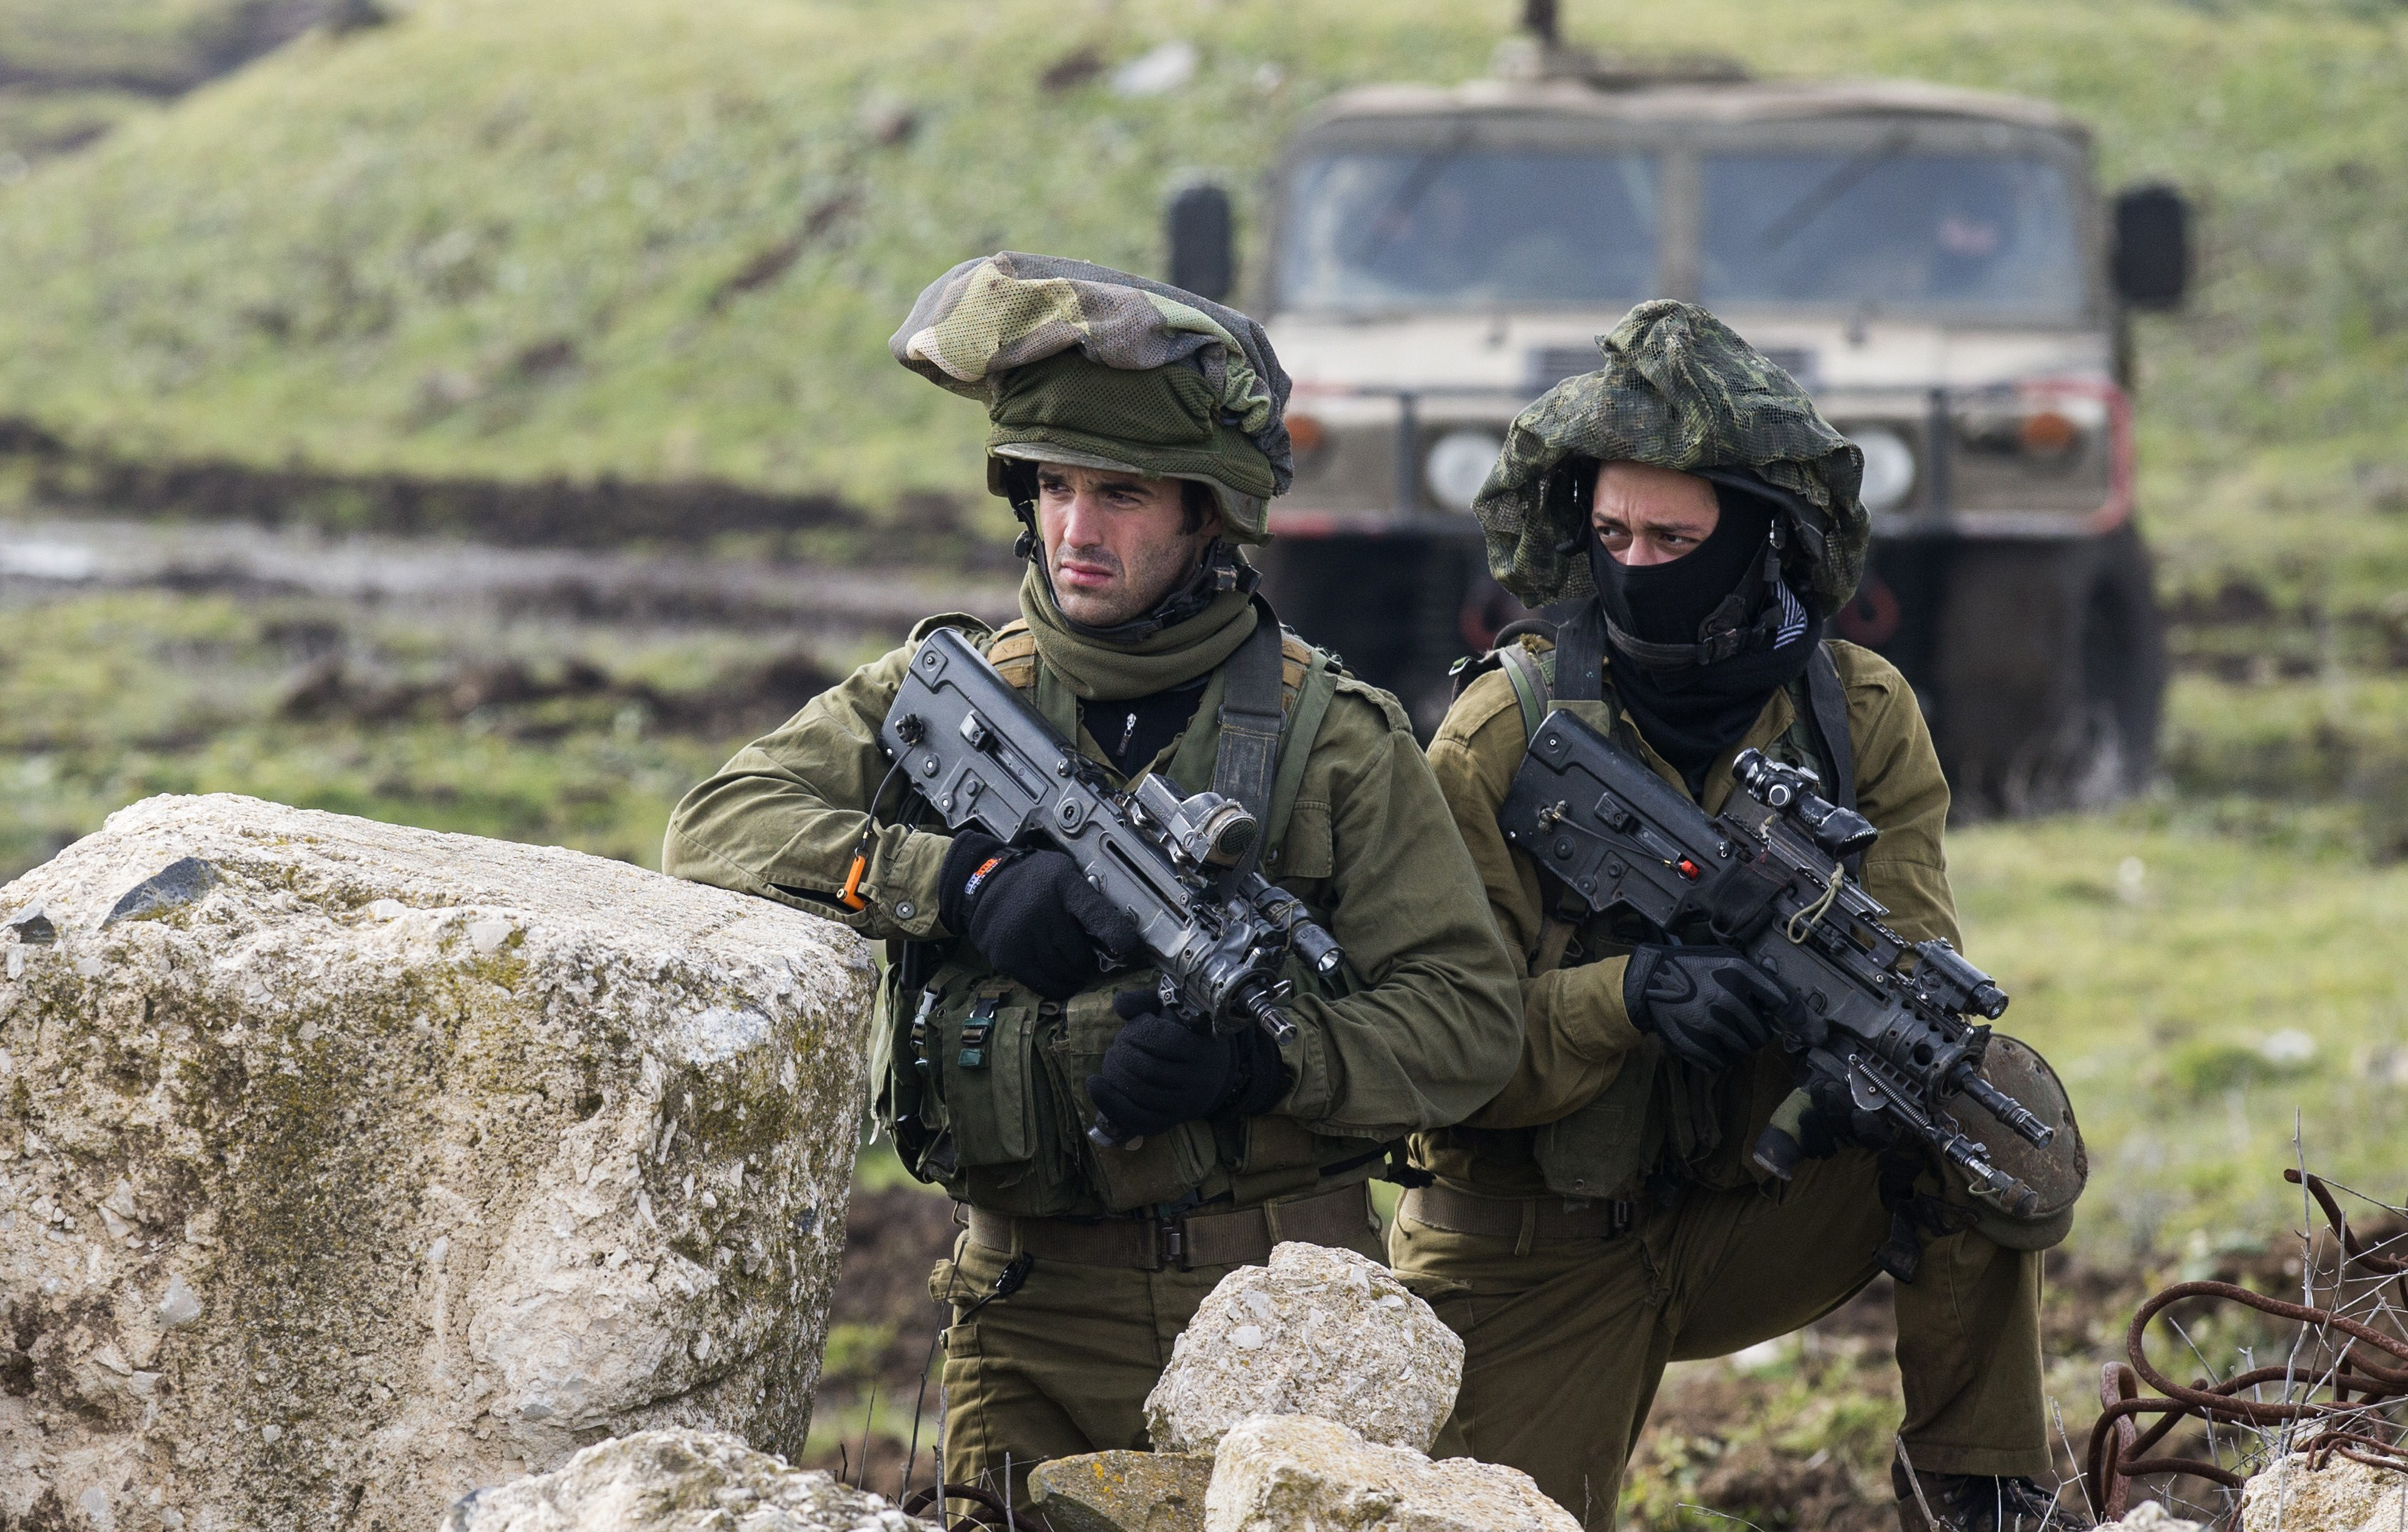 Israeli soldiers from the Golani Brigade take part in a military training exercise near the border with Syria on Jan. 19, 2015. (Jack Guez/AFP via Getty Images)